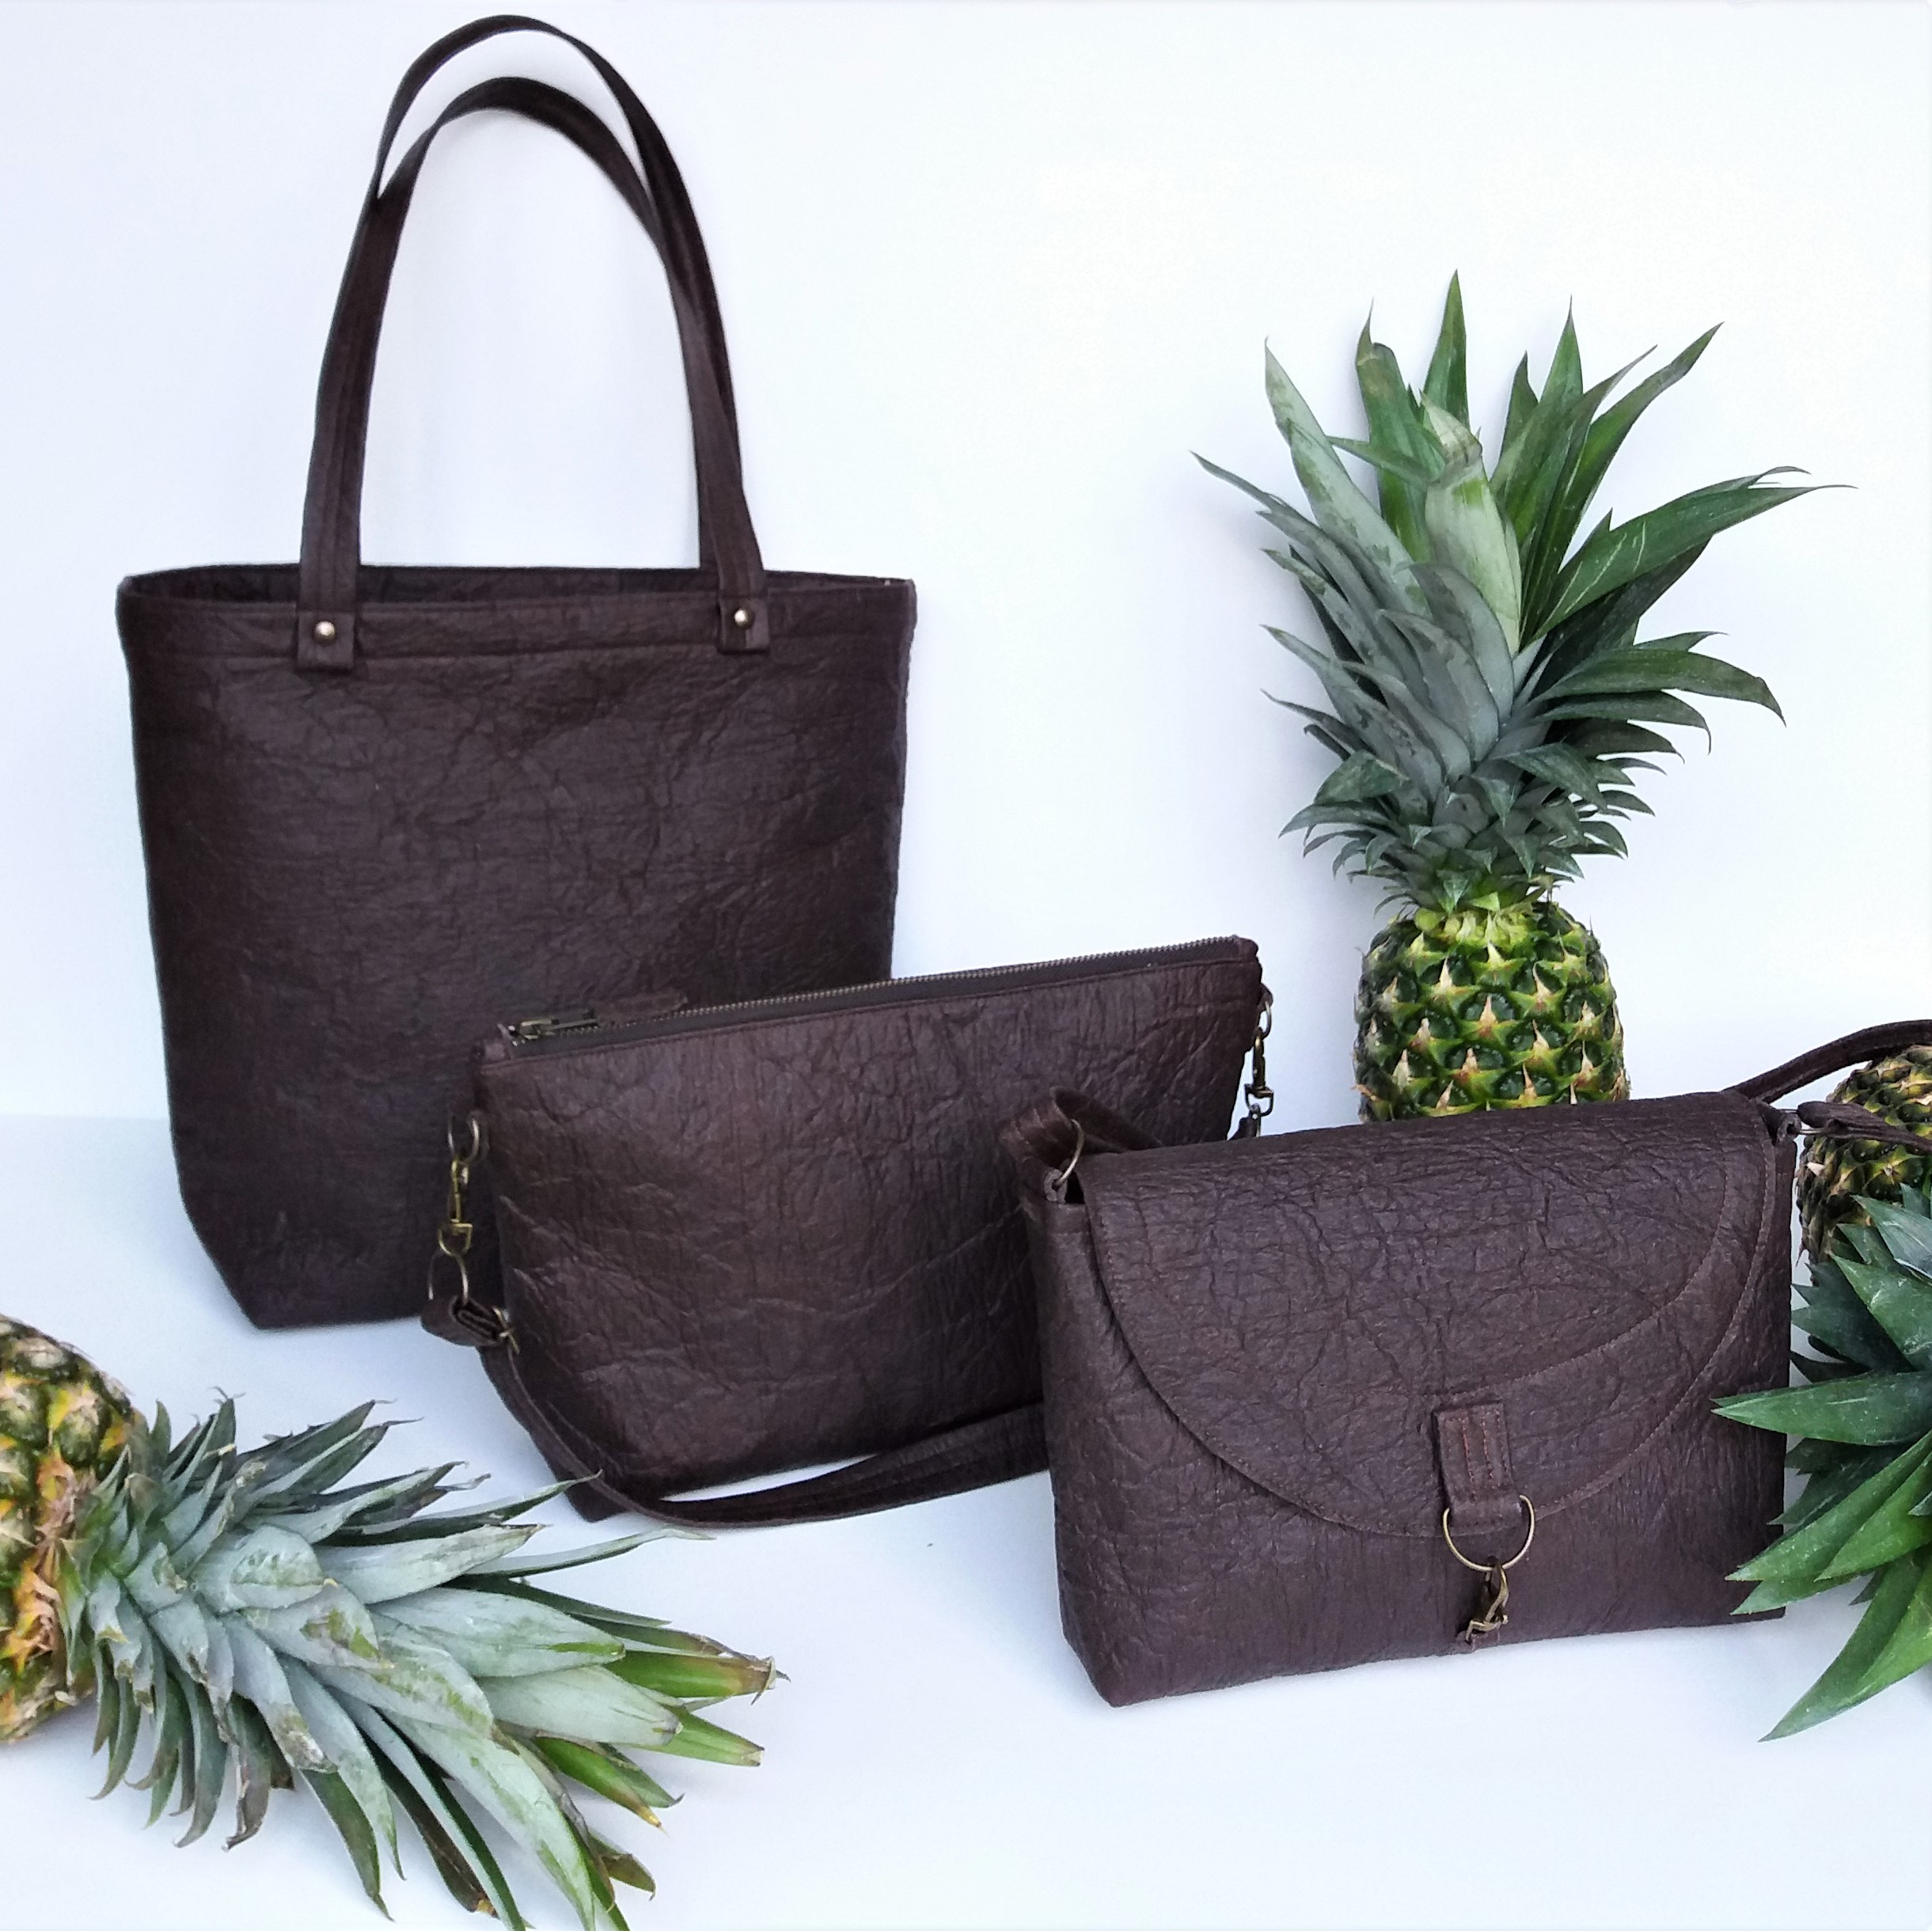 pinatex vegan bag by grey whale